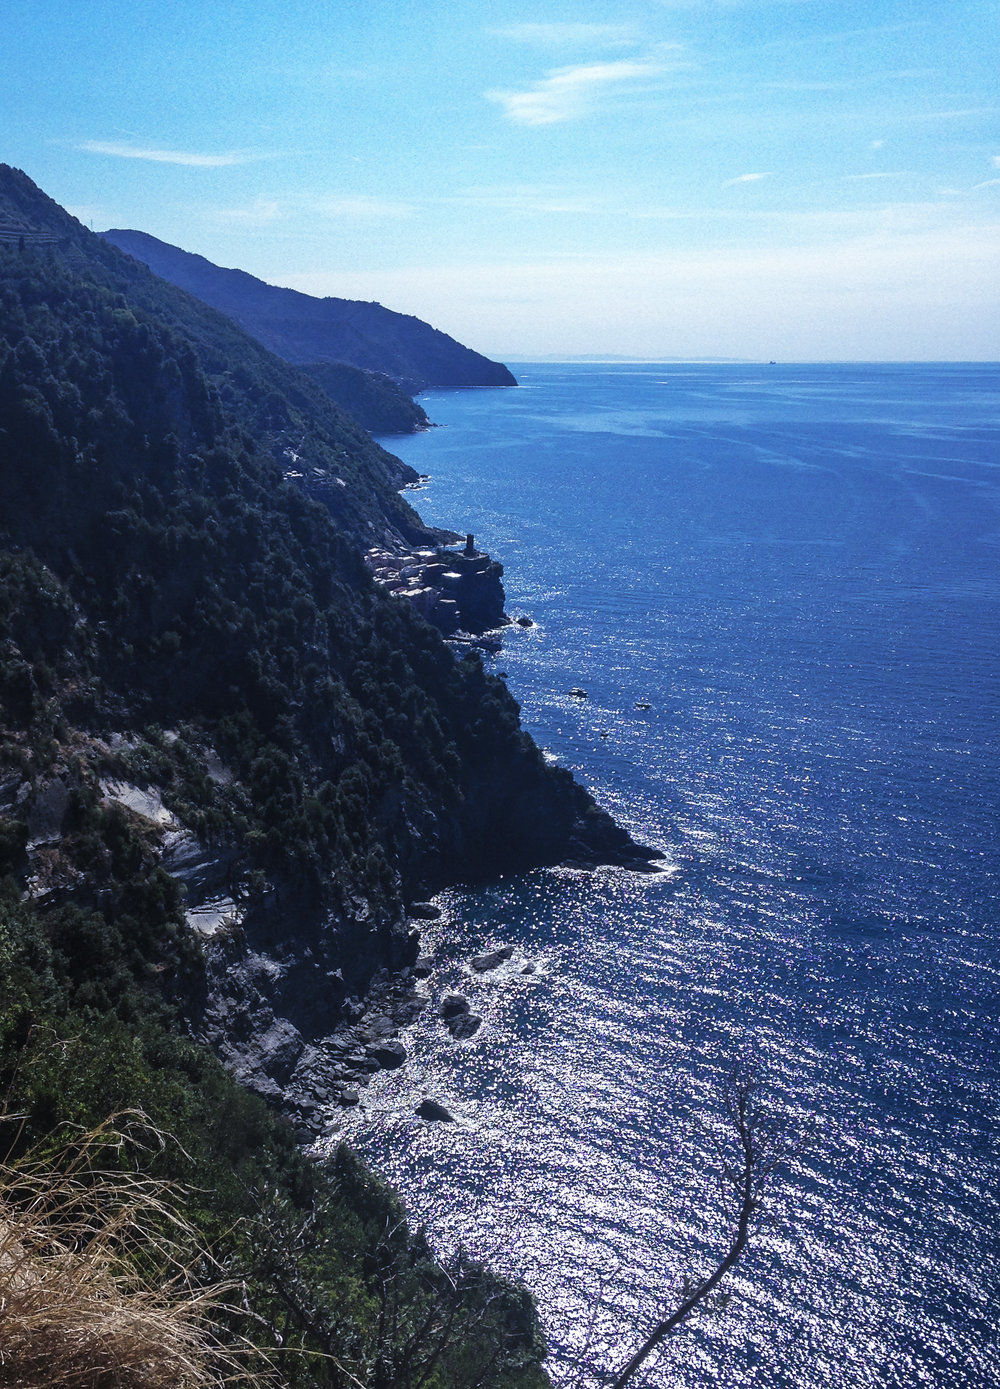 Stunning Views of the cinque terre coastline -